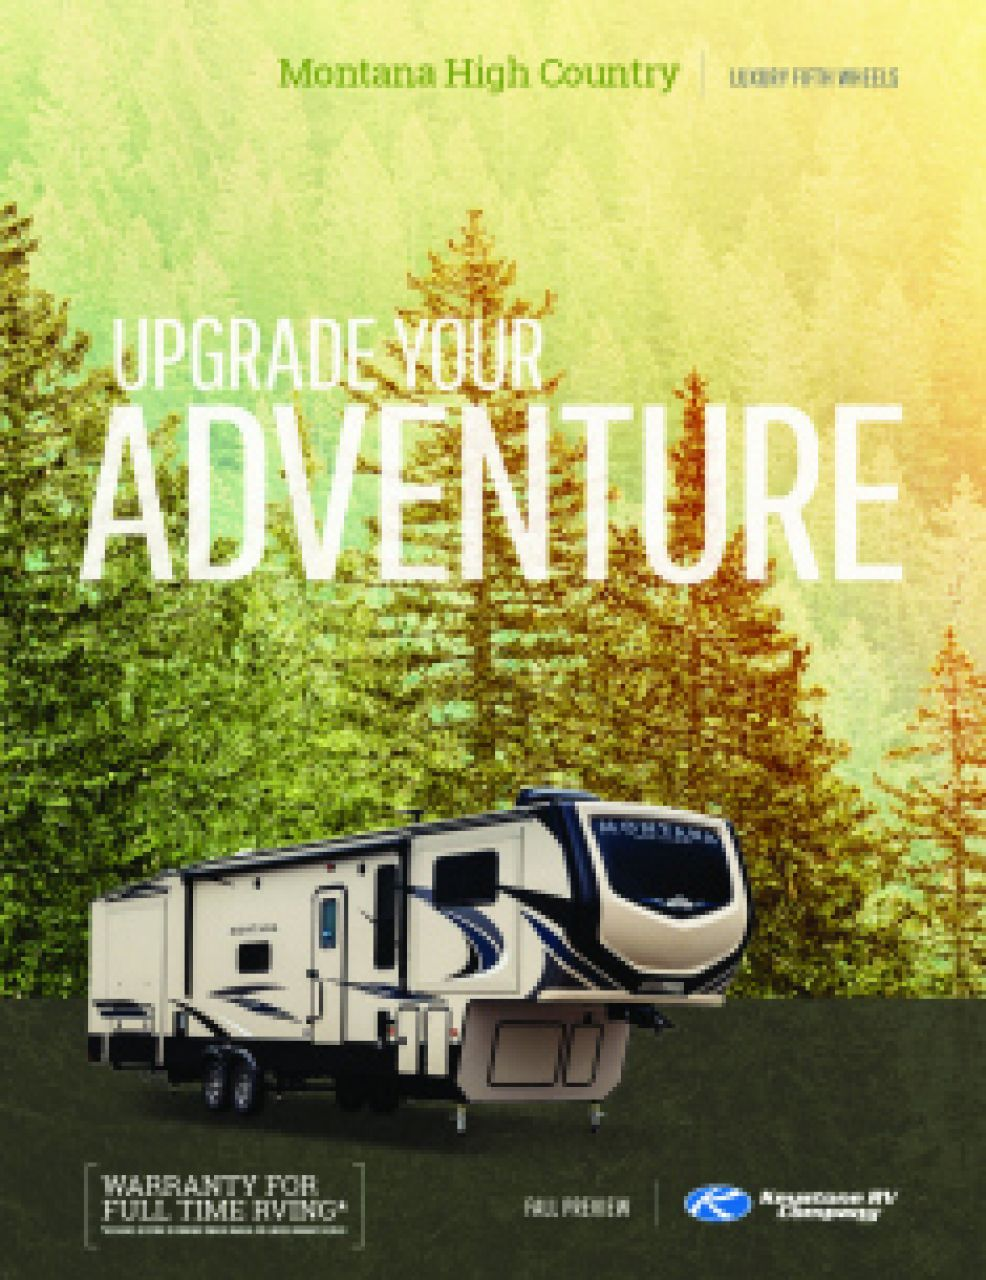 2019 Keystone Montana High Country RV Brochure Cover